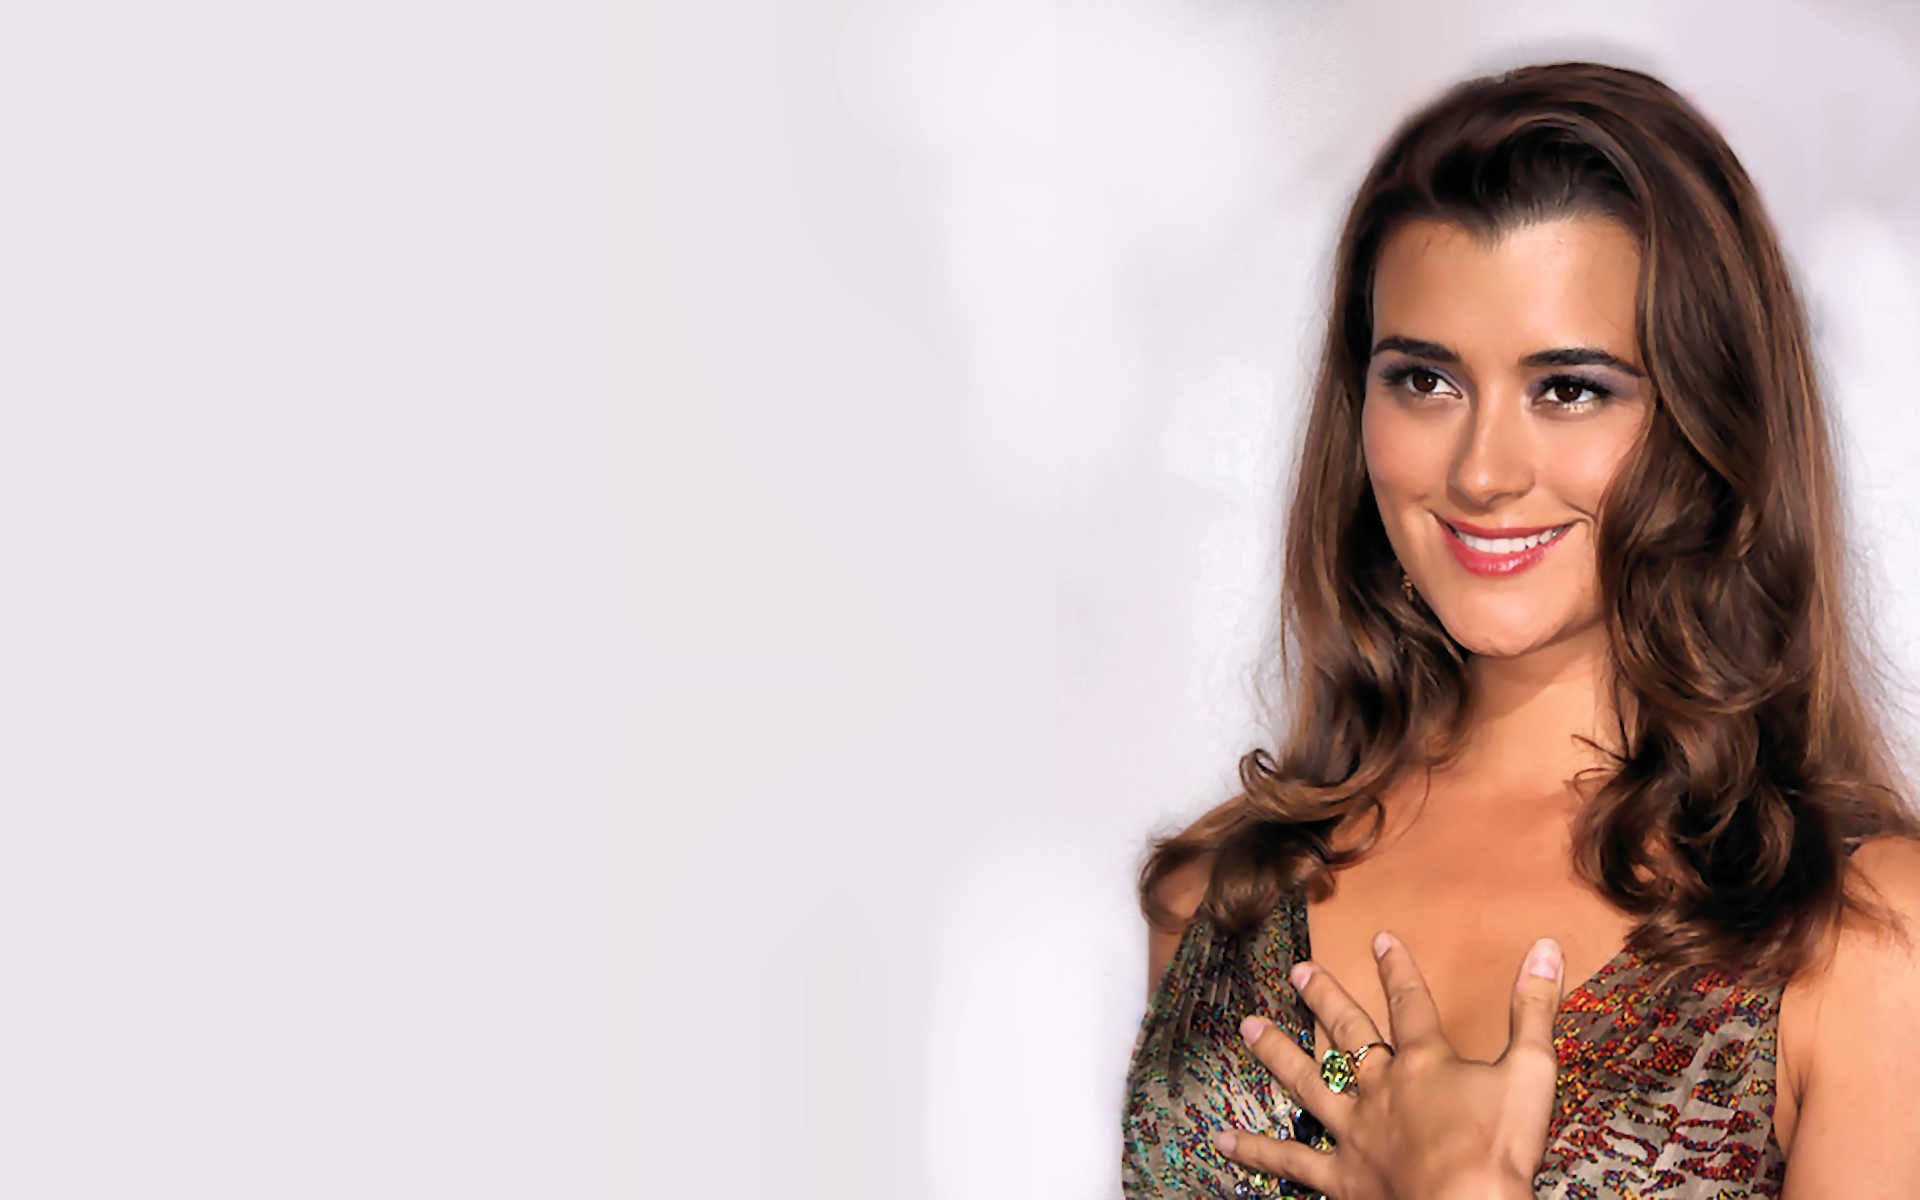 Ncis Cote De Pablo Ziva David Wallpaper